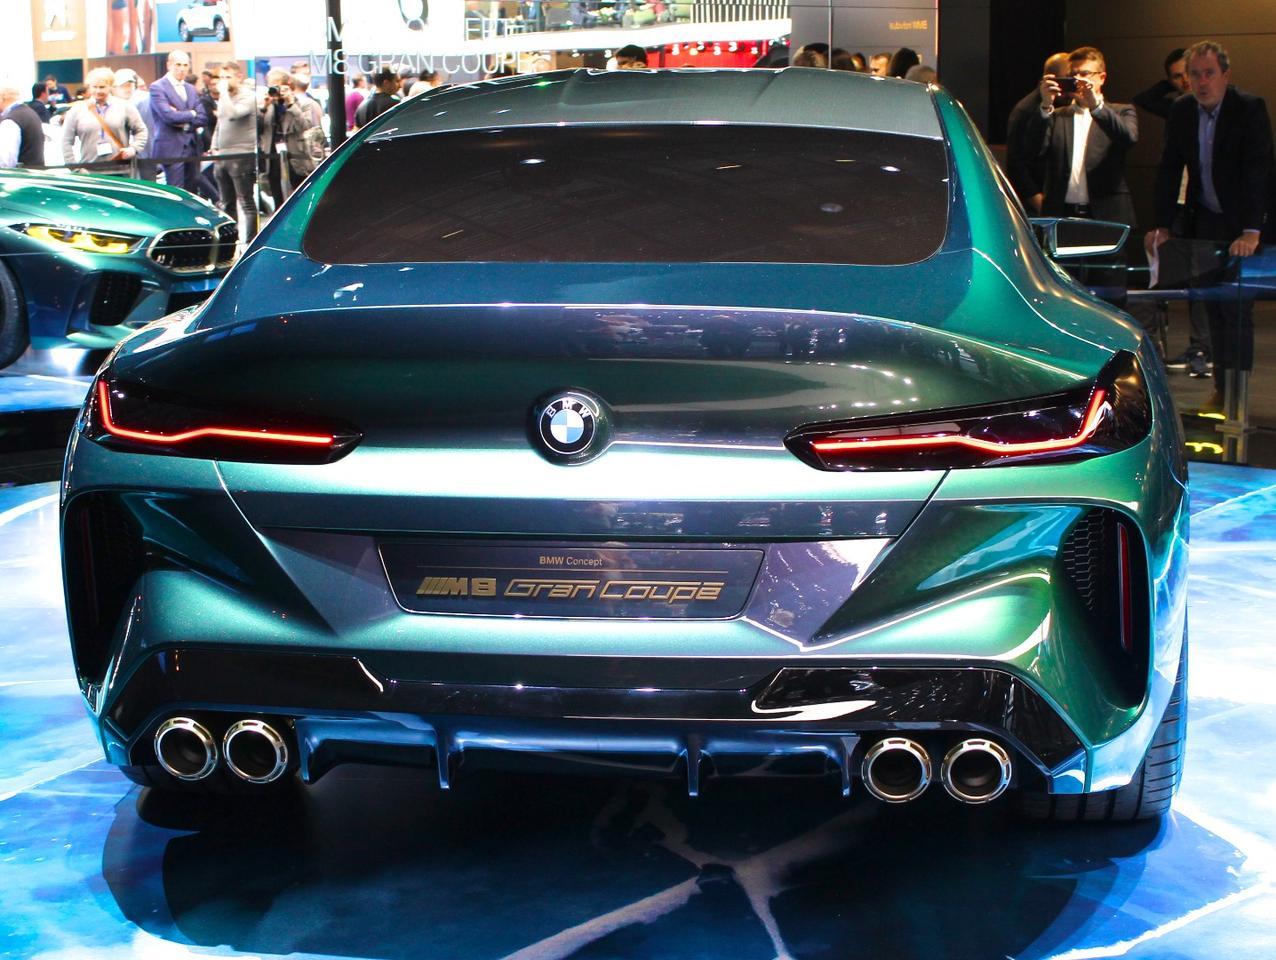 A fastback-styled rear with a pronounced aero lip defines the rear of the BMWM8 Gran Coupe concept